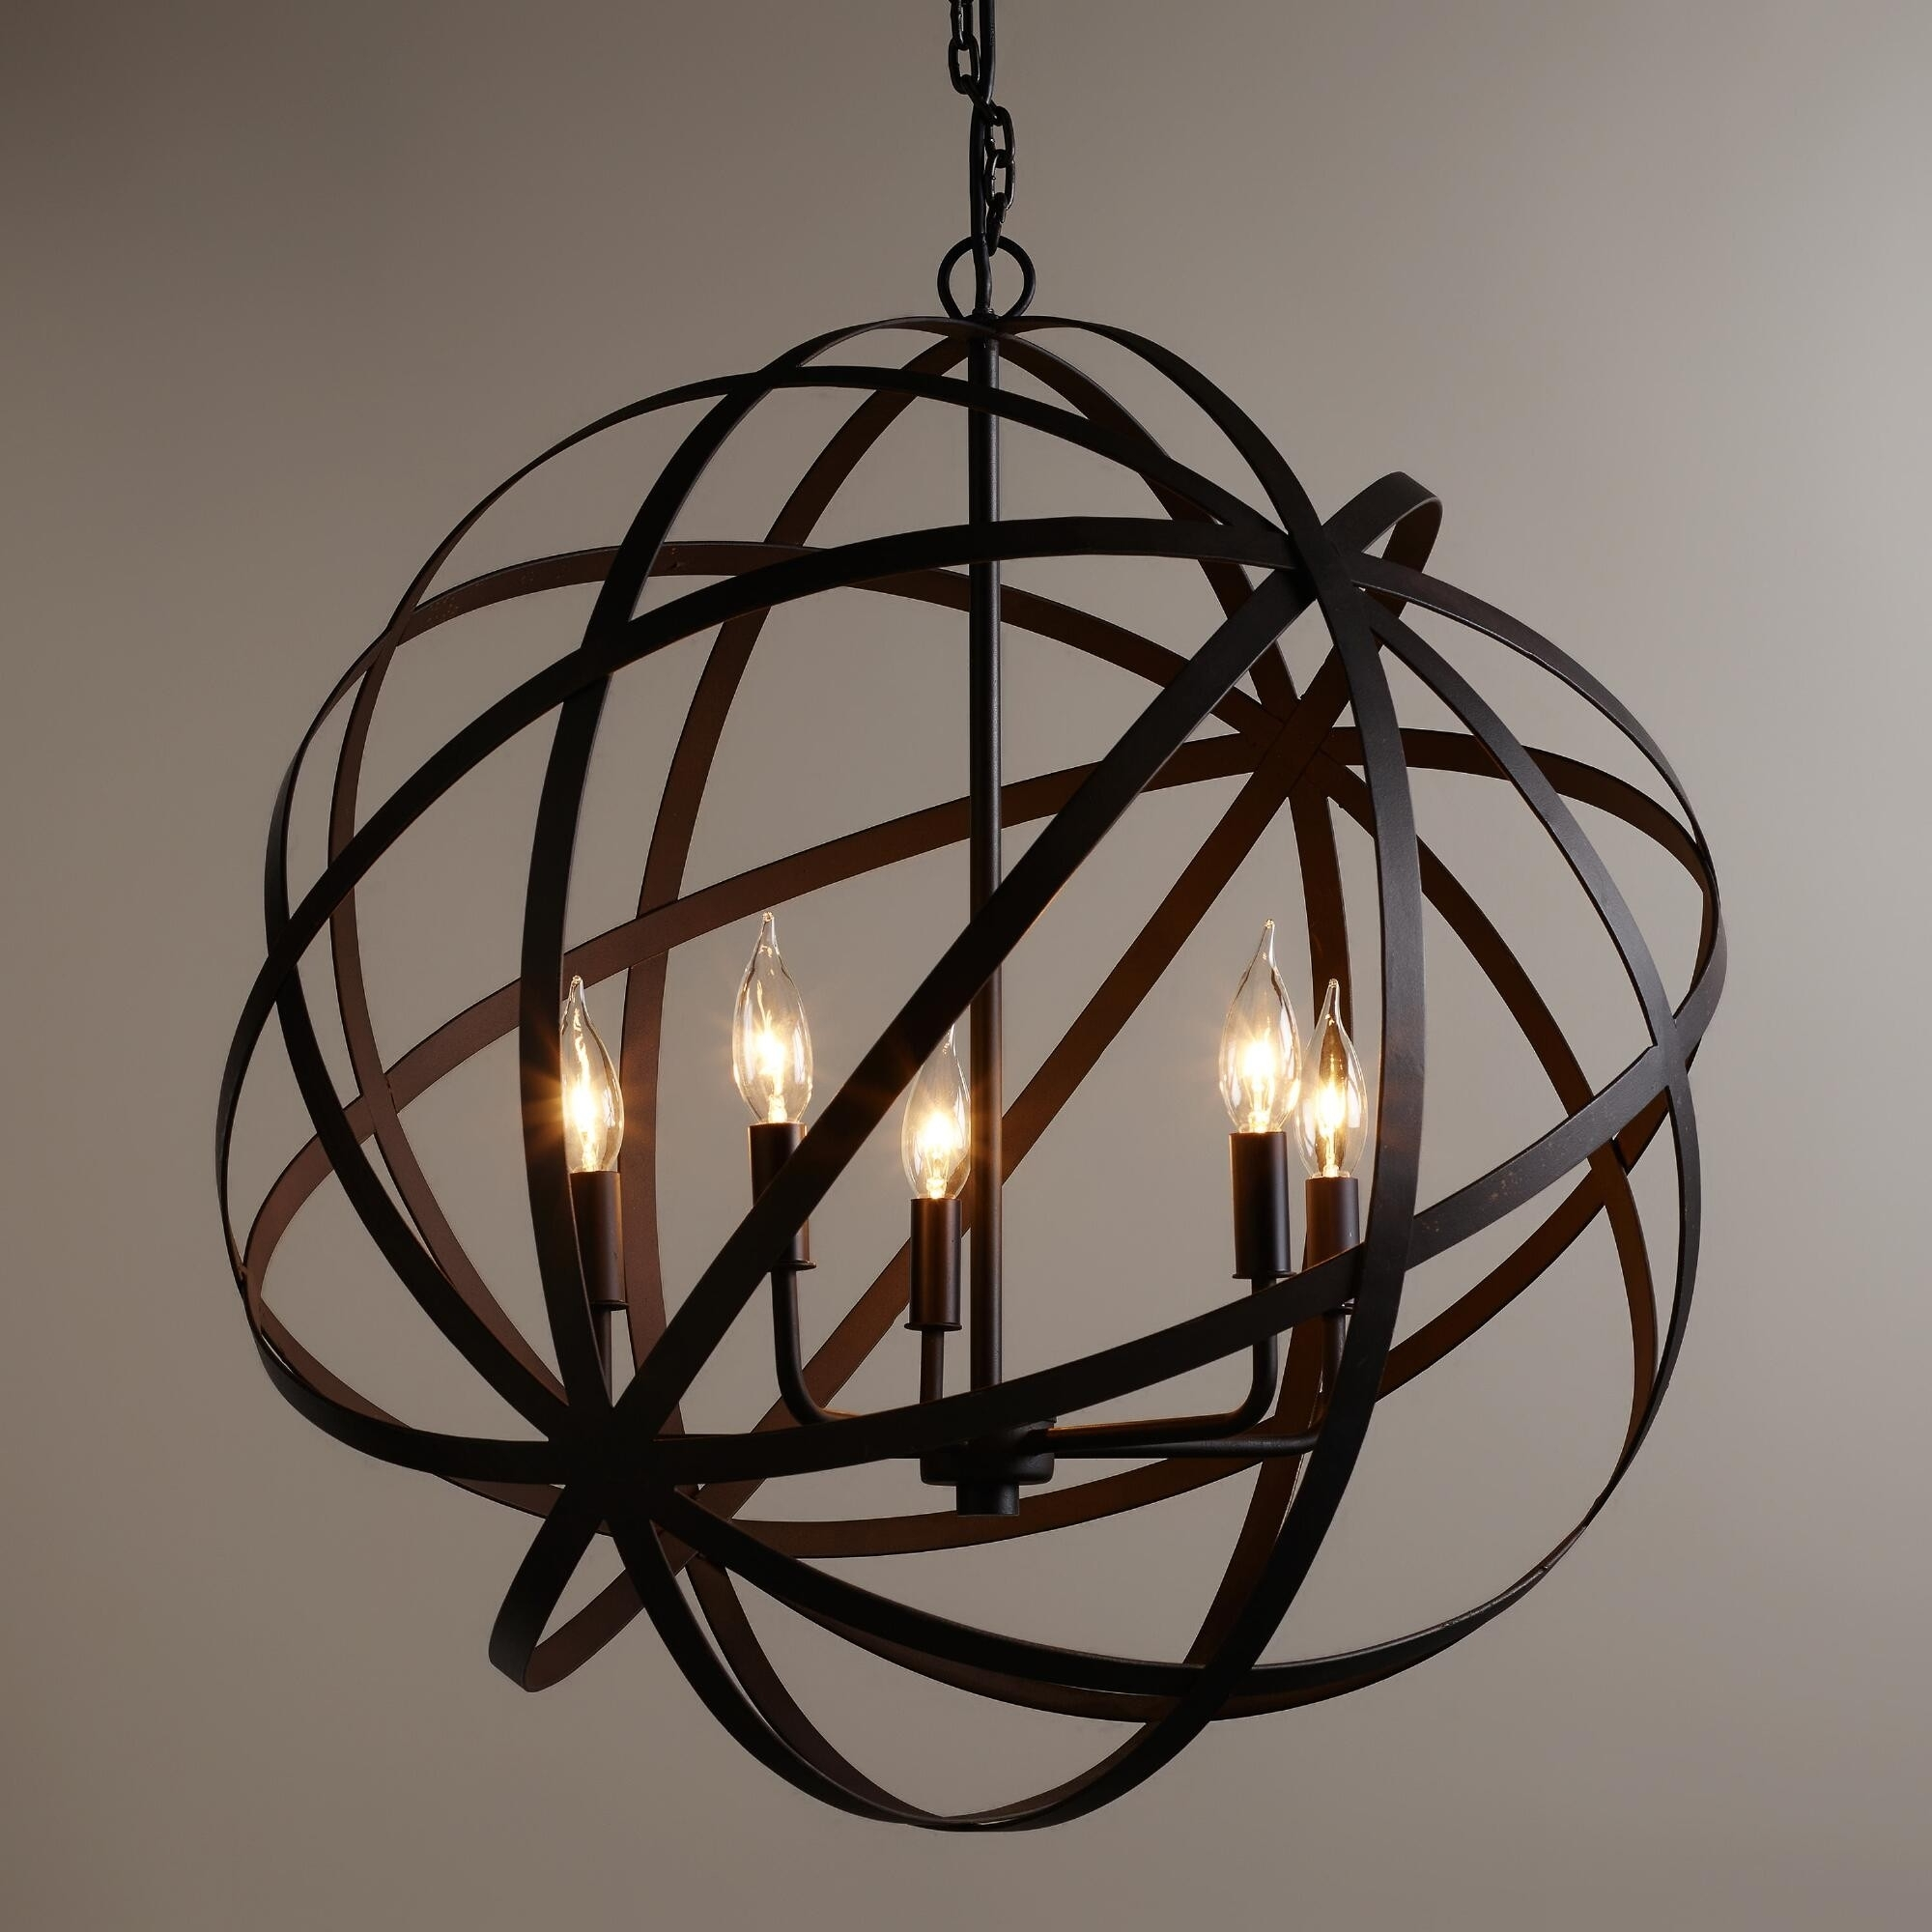 Most Recent Contemporary Rustic Outdoor Lighting At Wayfair In Outdoor Lighting: Marvellous Large Exterior Chandeliers Dusk To Dawn (View 15 of 20)